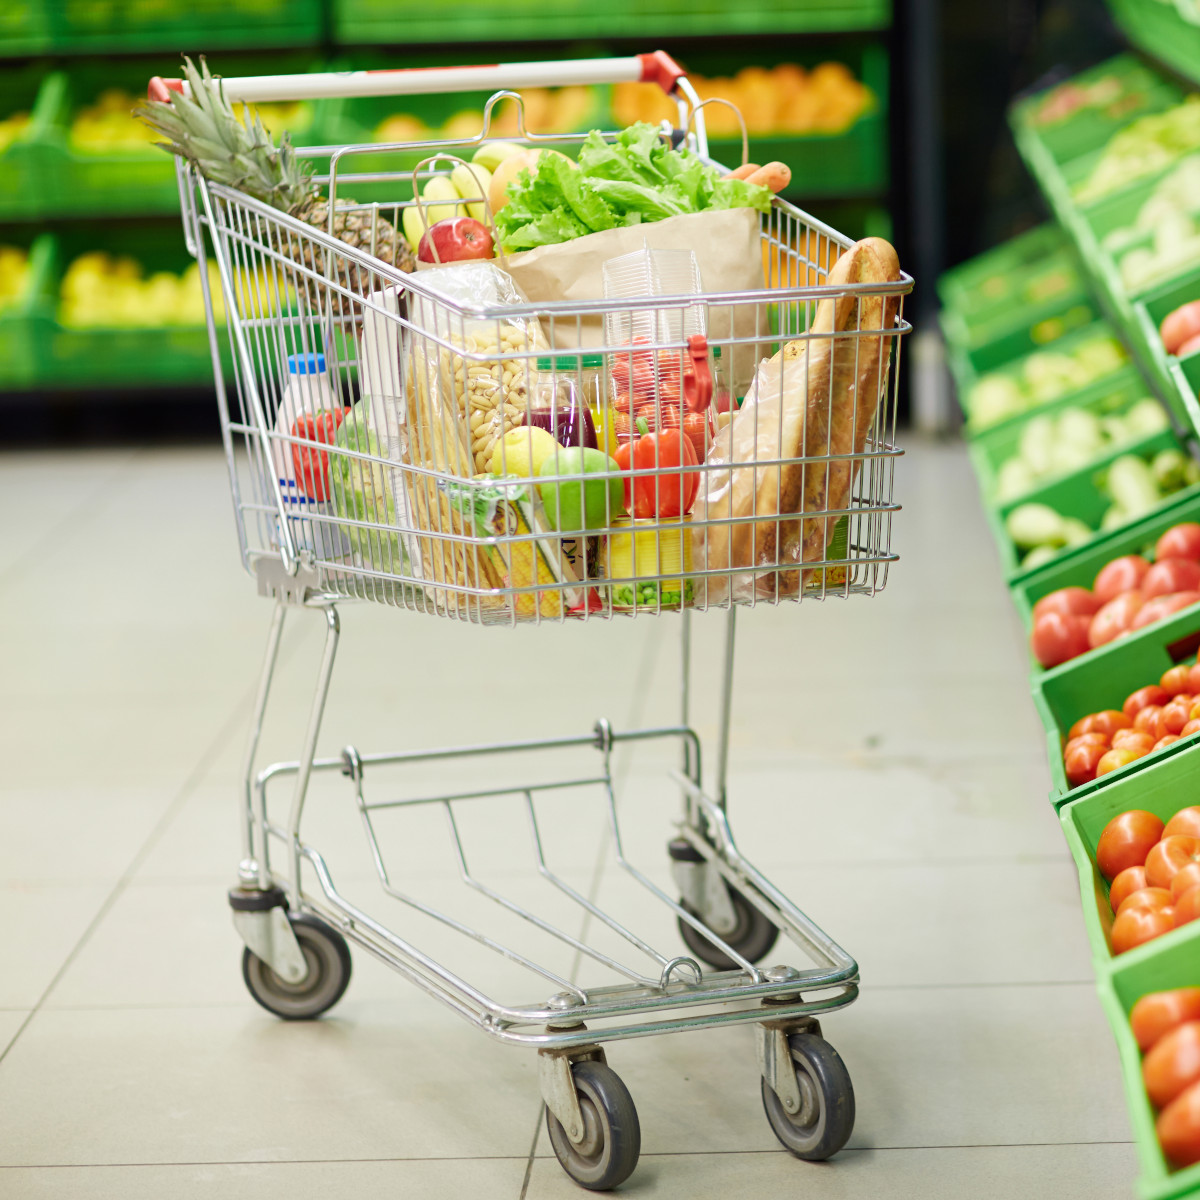 Skills At Work - Grocery Cart in Store